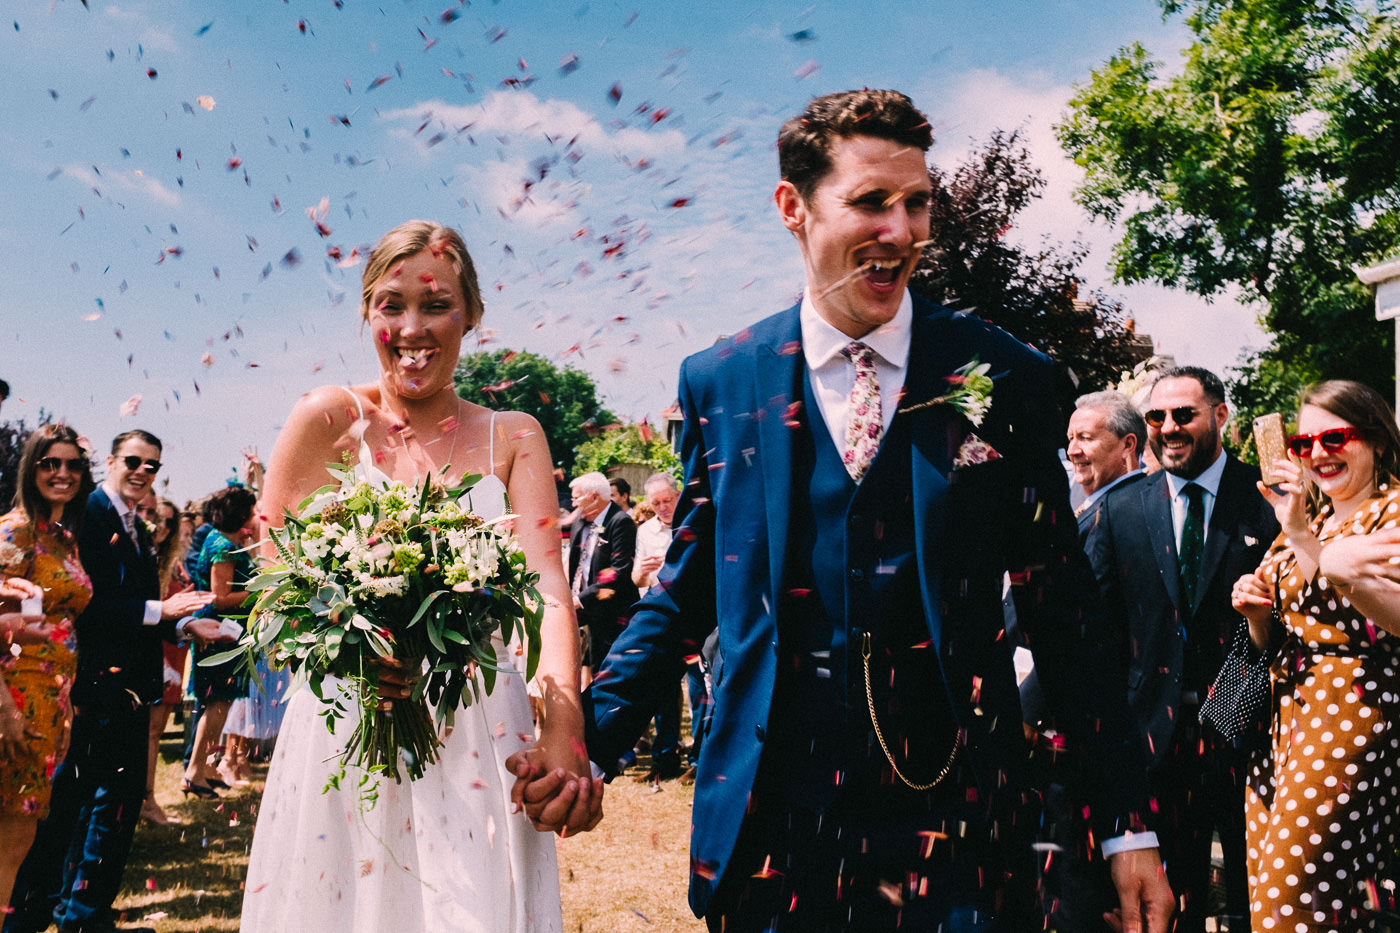 COWBRIDGE GLYNDWR VINEYARD WEDDING PHOTOGRAPHY CARDIFF SOUTH WALES 039